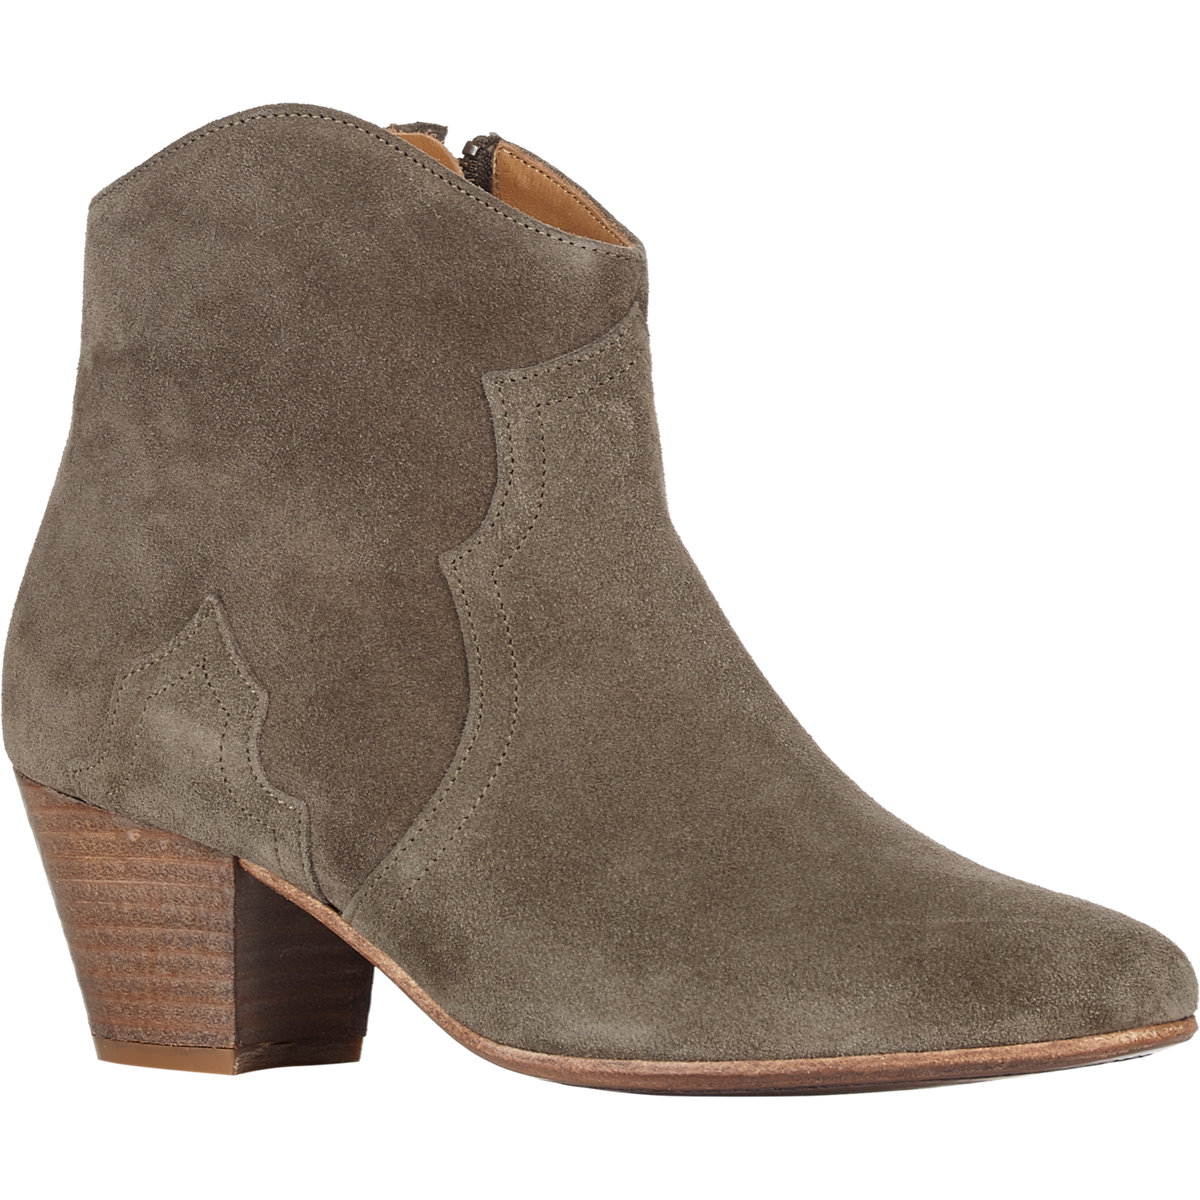 Isabel marant dicker ankle boots at barneys.com